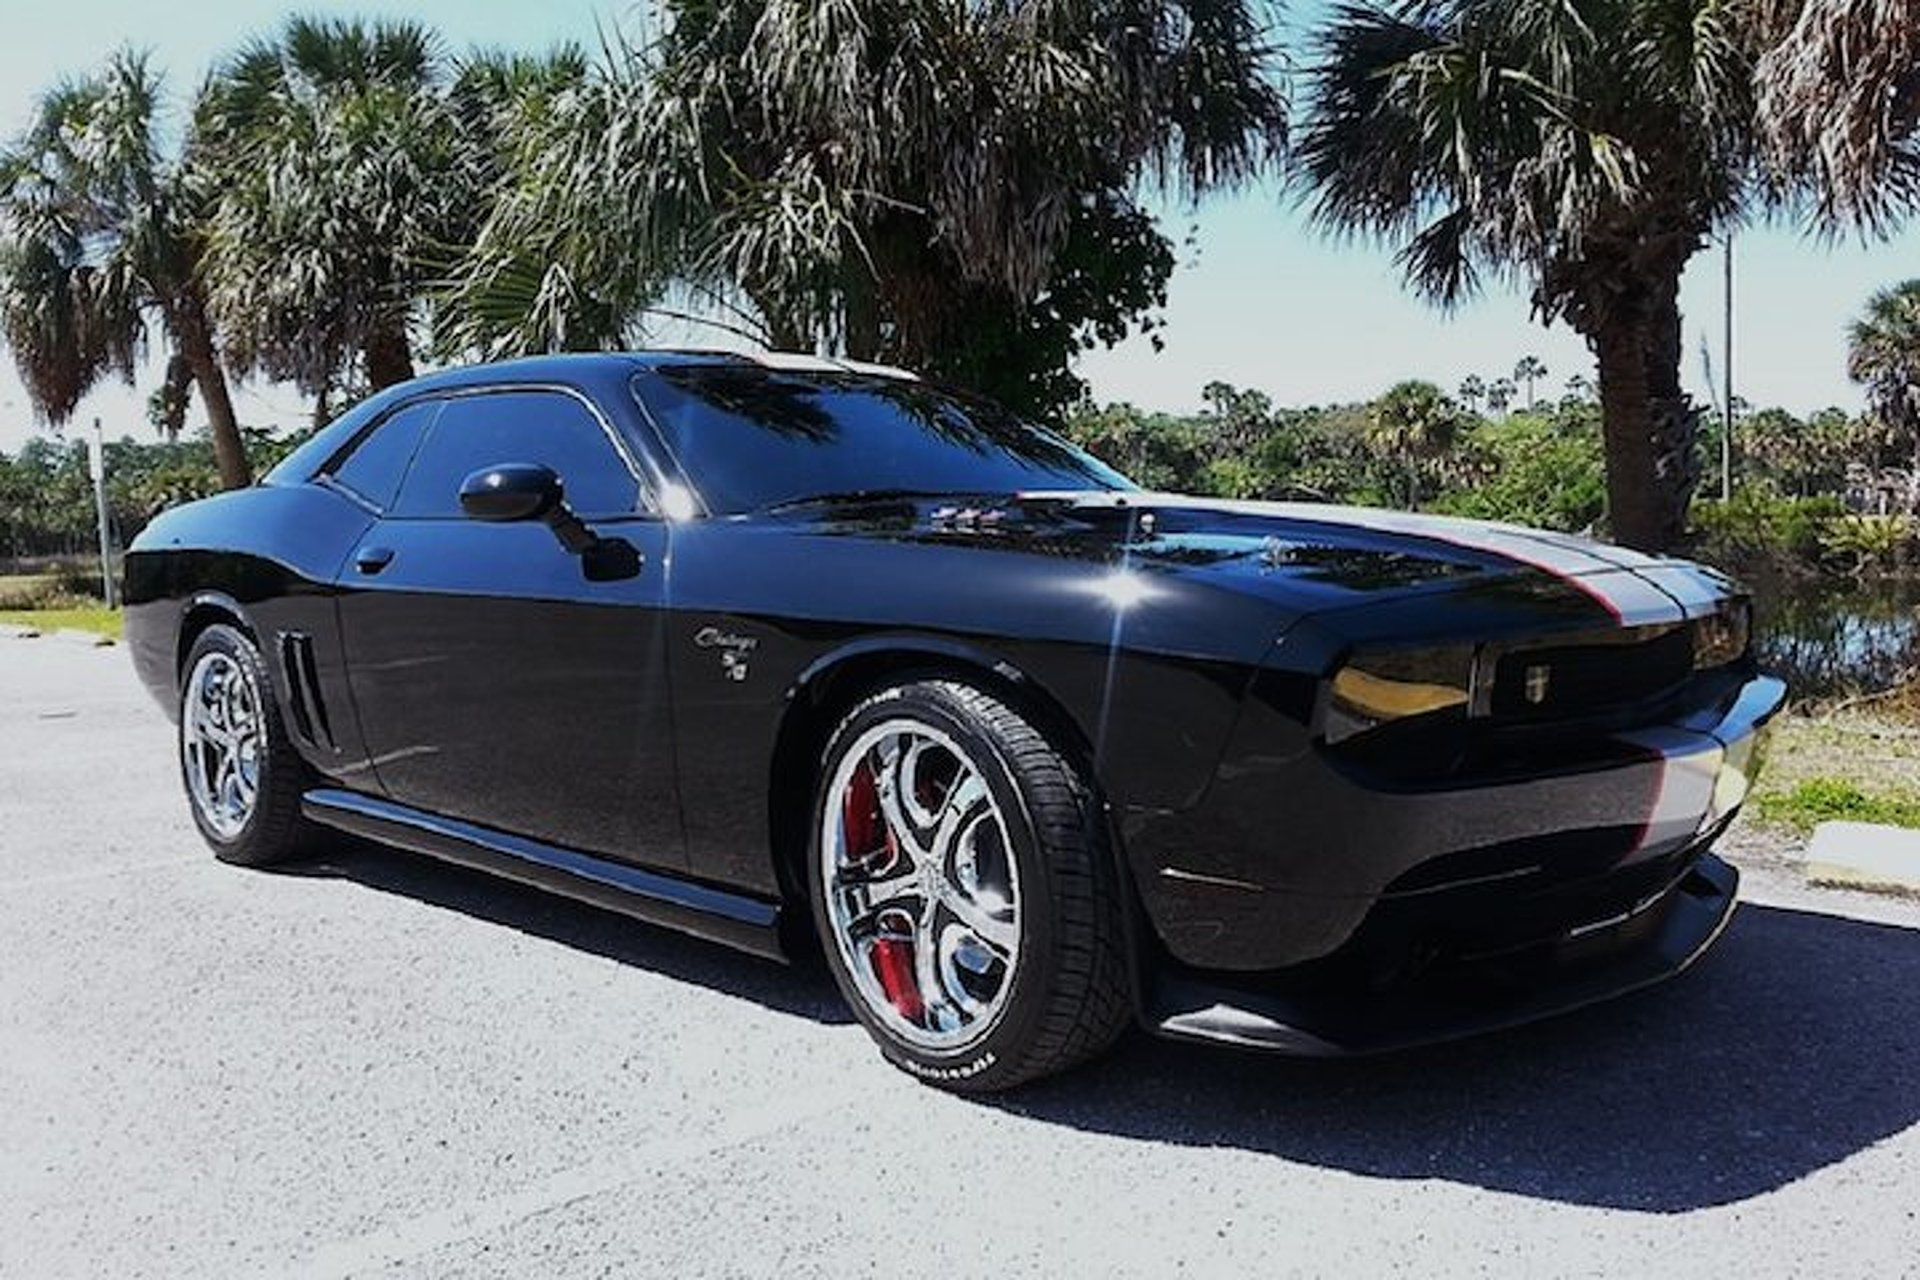 700HP Dodge Challenger SRT8 — No Hellcat Needed: Your Ride